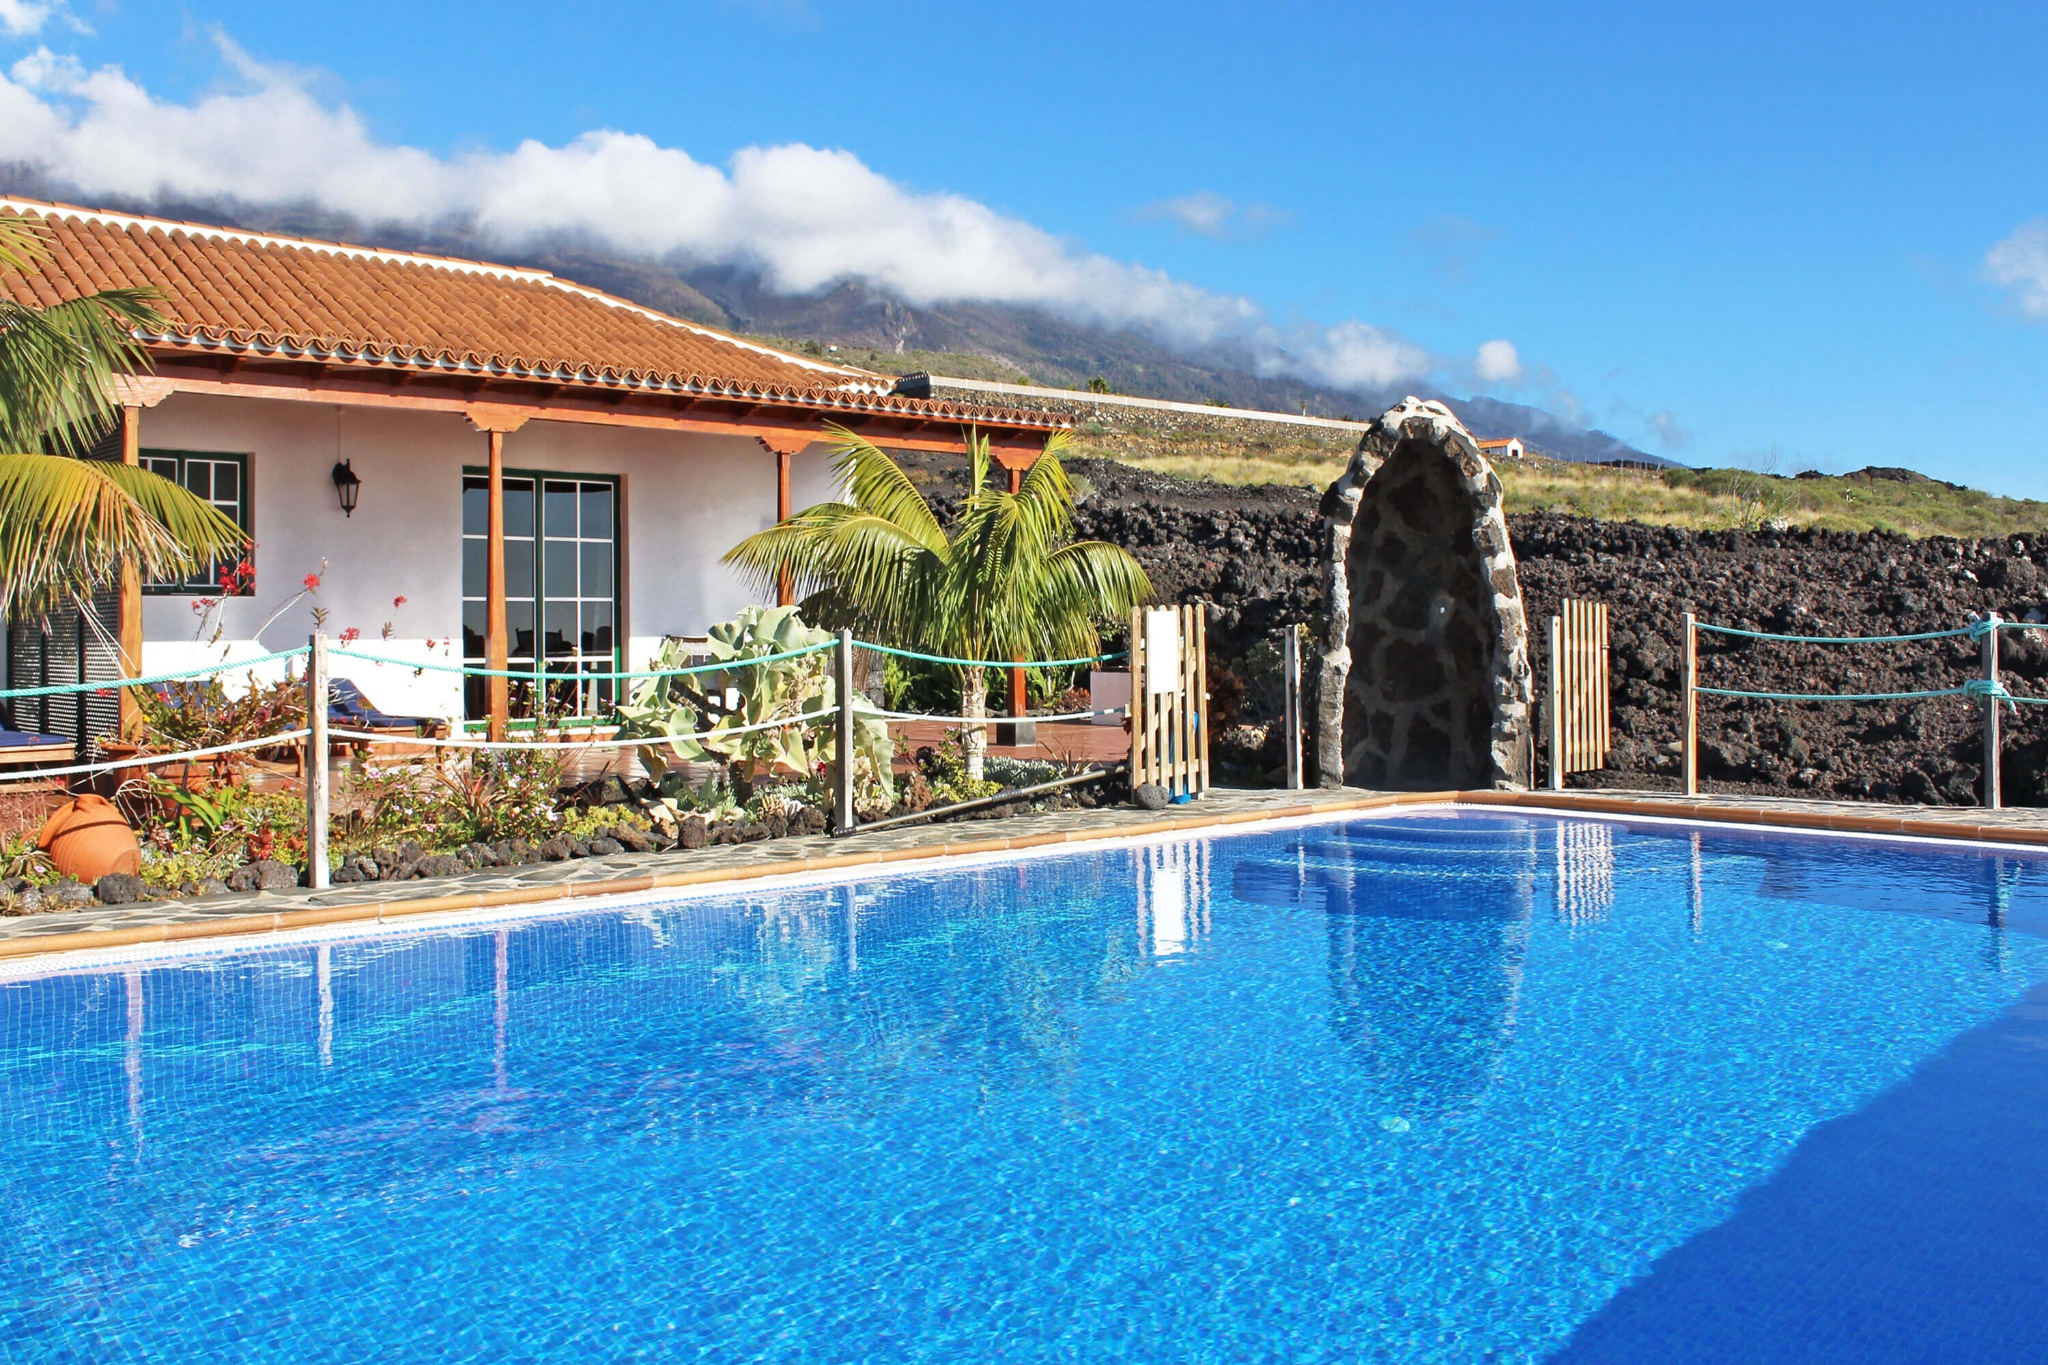 Holiday apartment with big community pool terrace for a relaxing holiday in La Palma